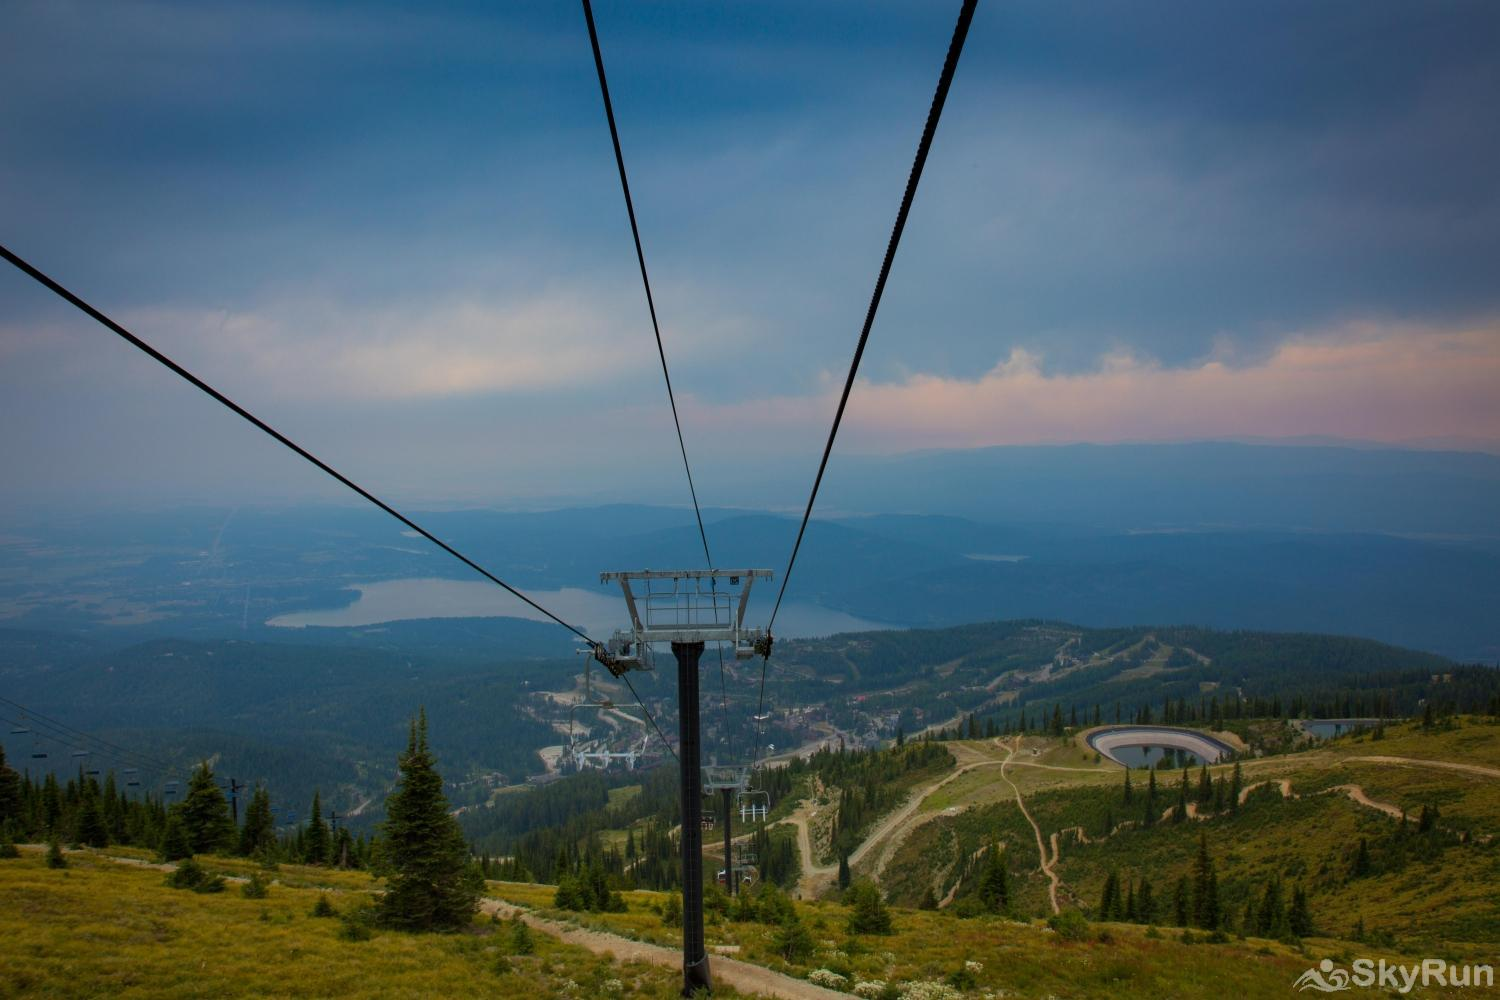 Red Fox Hollow Whitefish Ski Resort in the summer looking down on Whitefish Lake